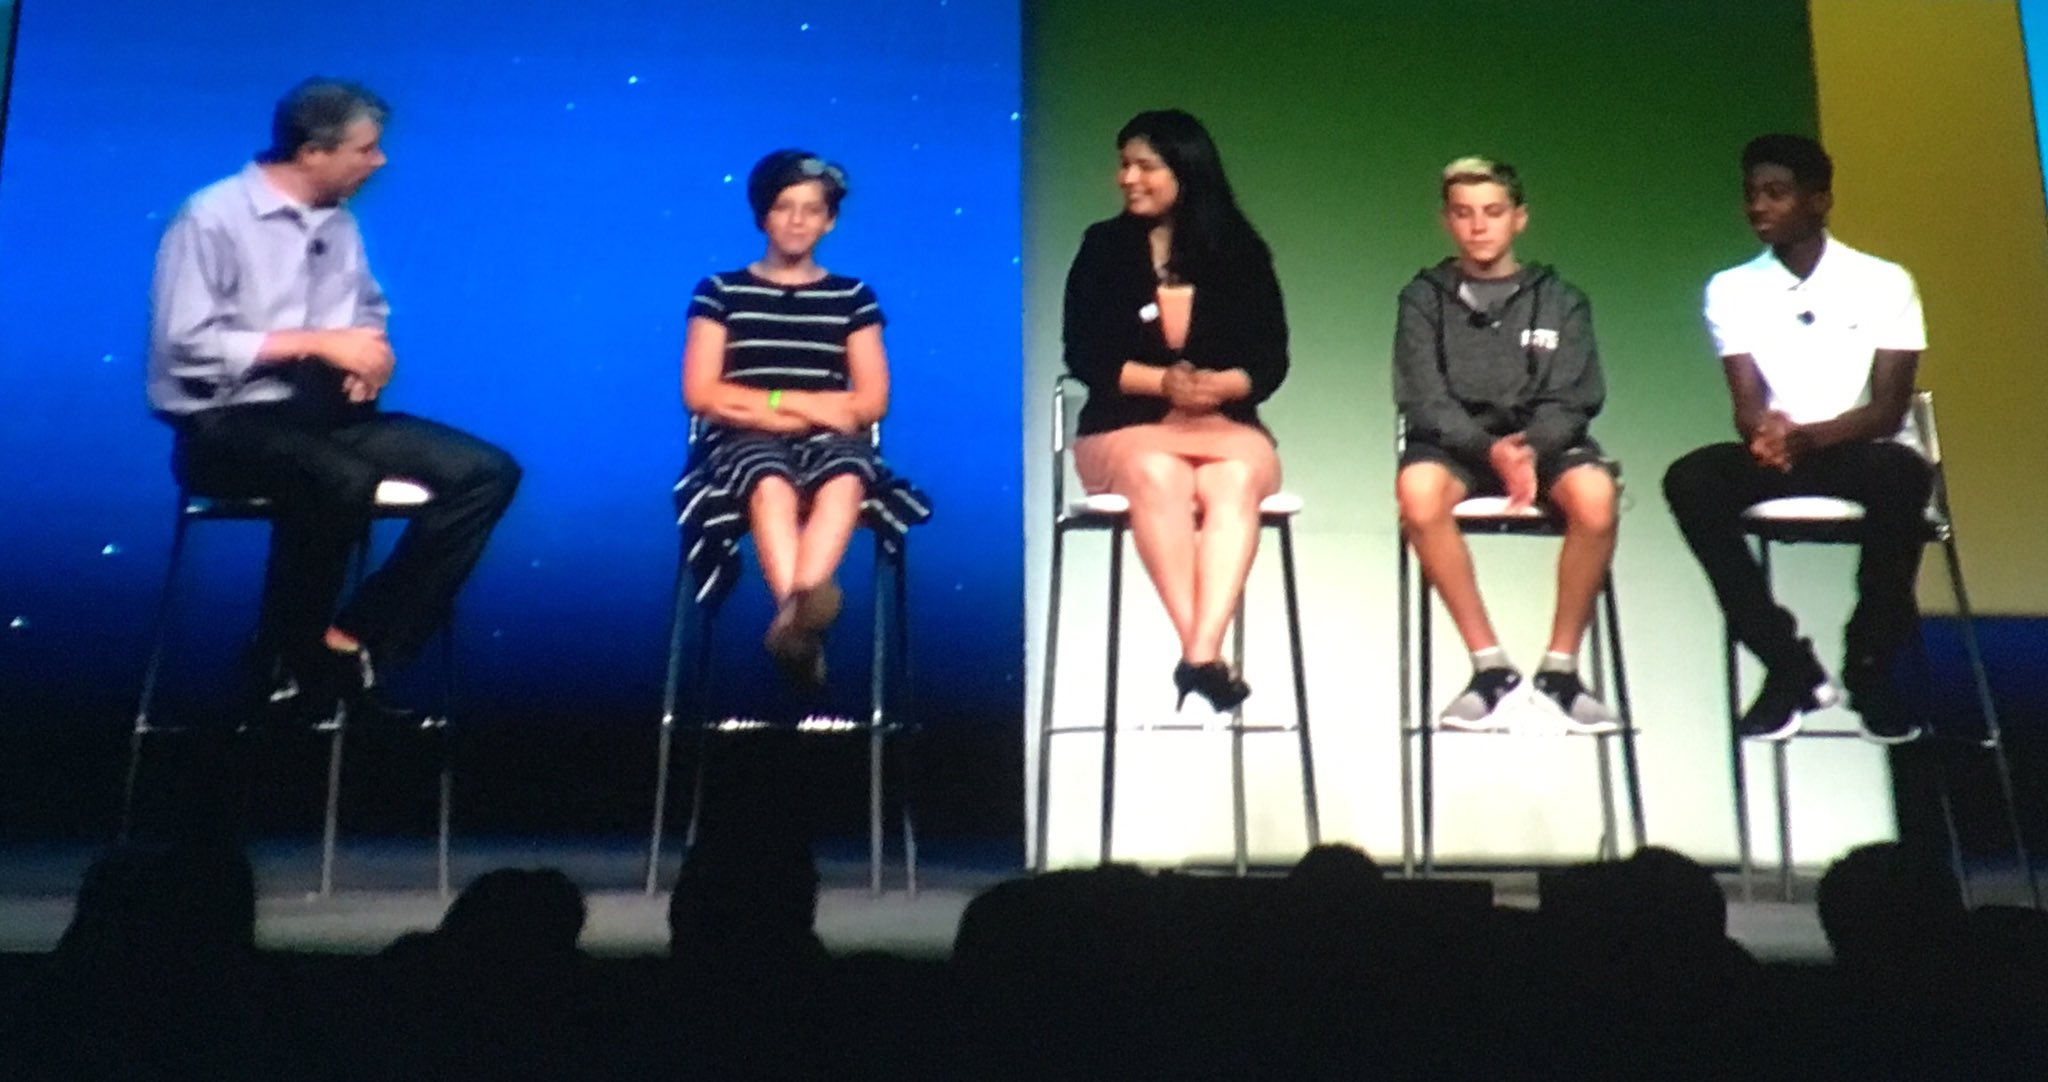 Student panel at #iste17 keynote. Q: What do you think we should remove from schools?  A: Homework, Long Lectures, Desks, Bullying. Wow! https://t.co/WYUi5ENOvK